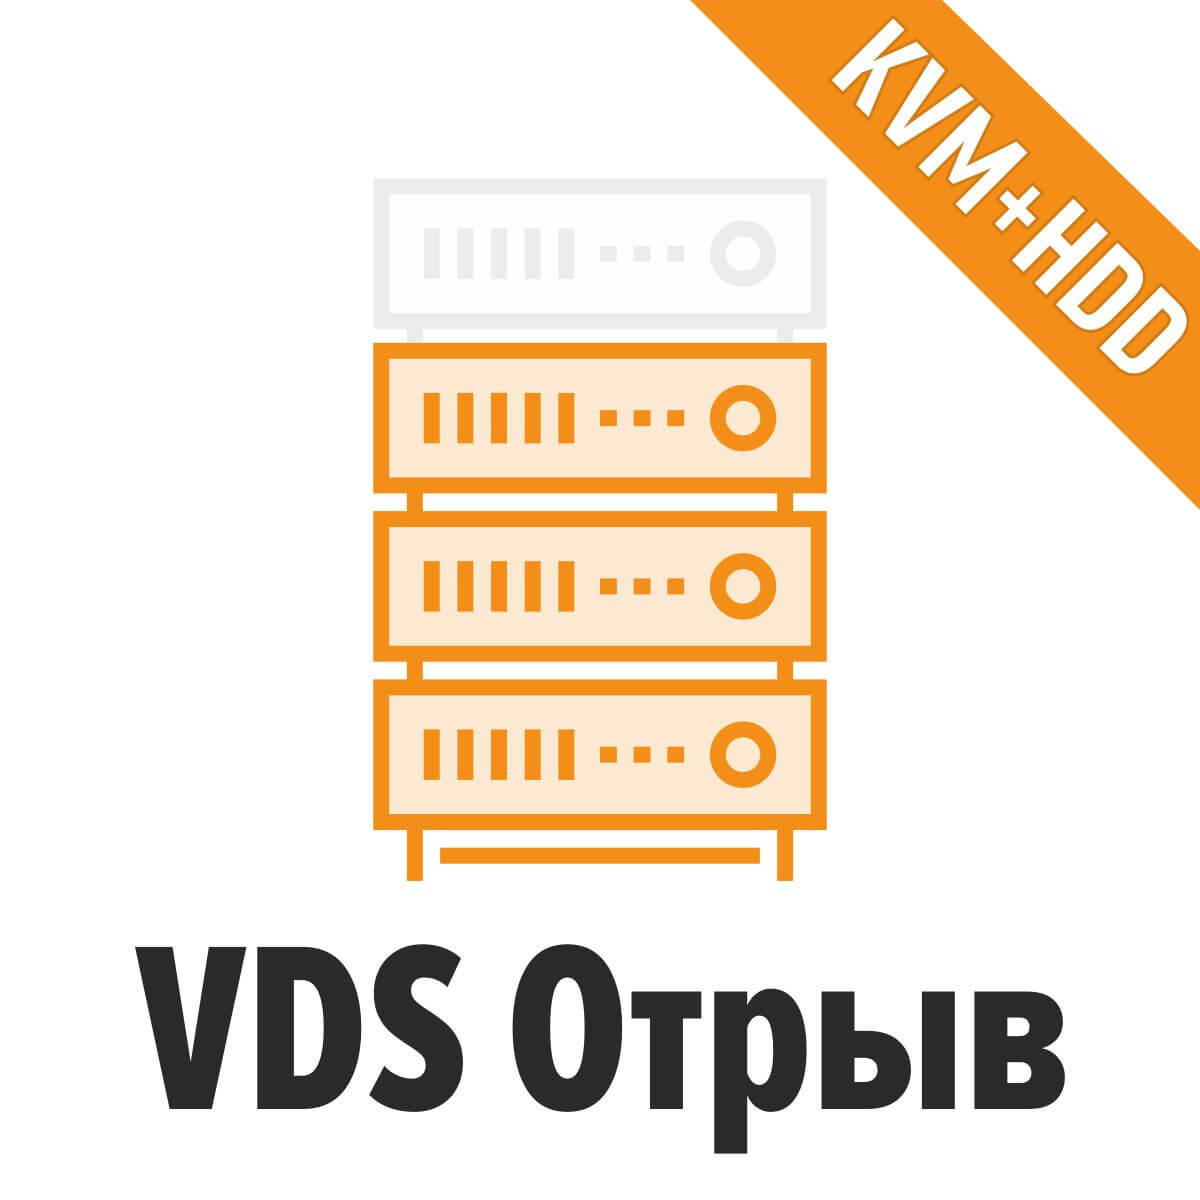 VDS Отрыв (KVM, HDD+SSD, 4 Core, 4Gb RAM, 90Gb HDD)